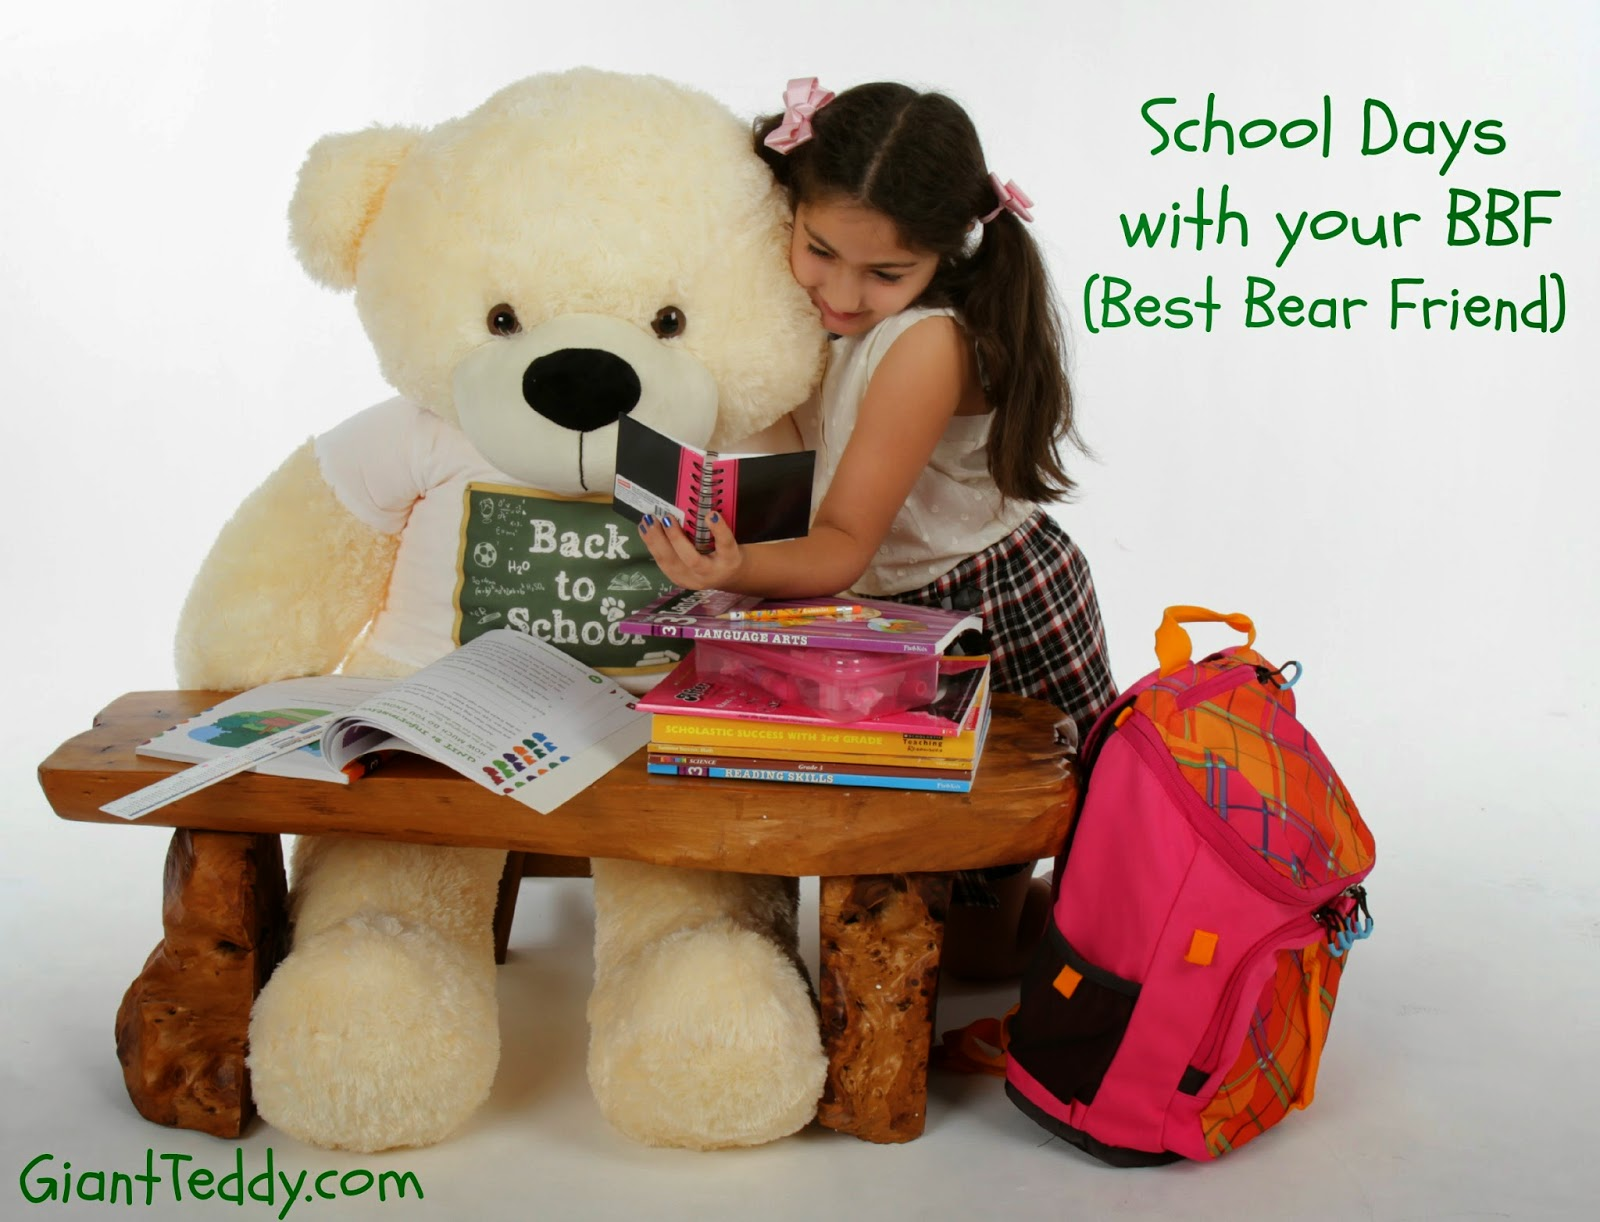 school and college at Giant Teddy